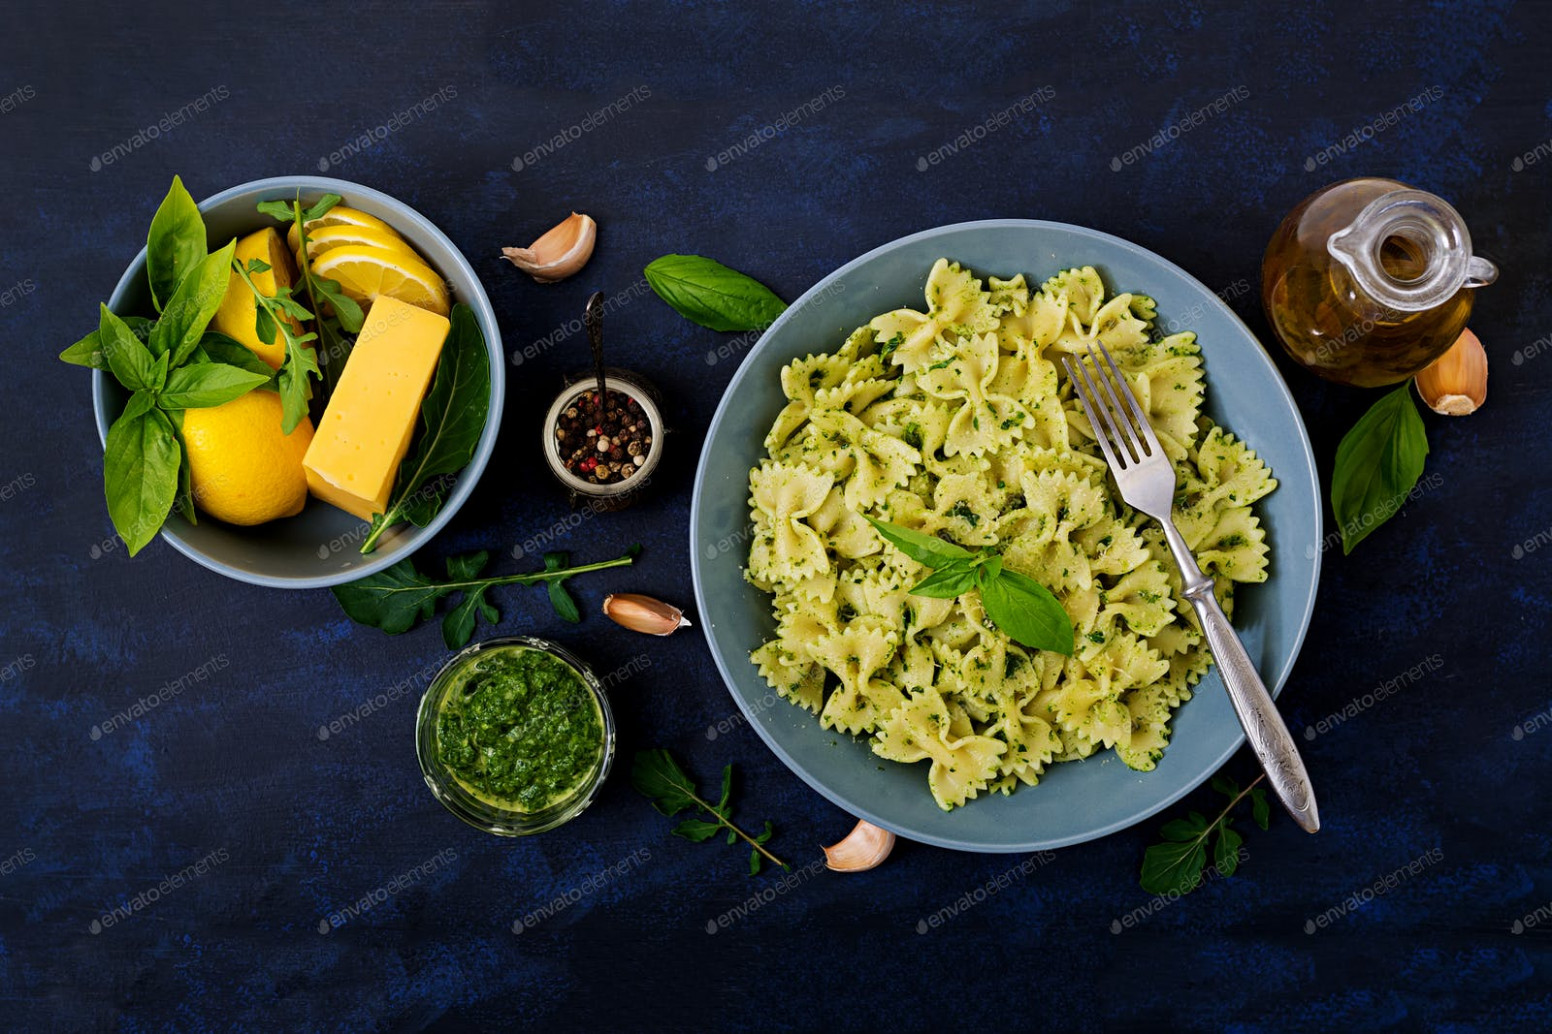 Vegan Farfalle pasta in a basil-spinach sauce with garlic ..